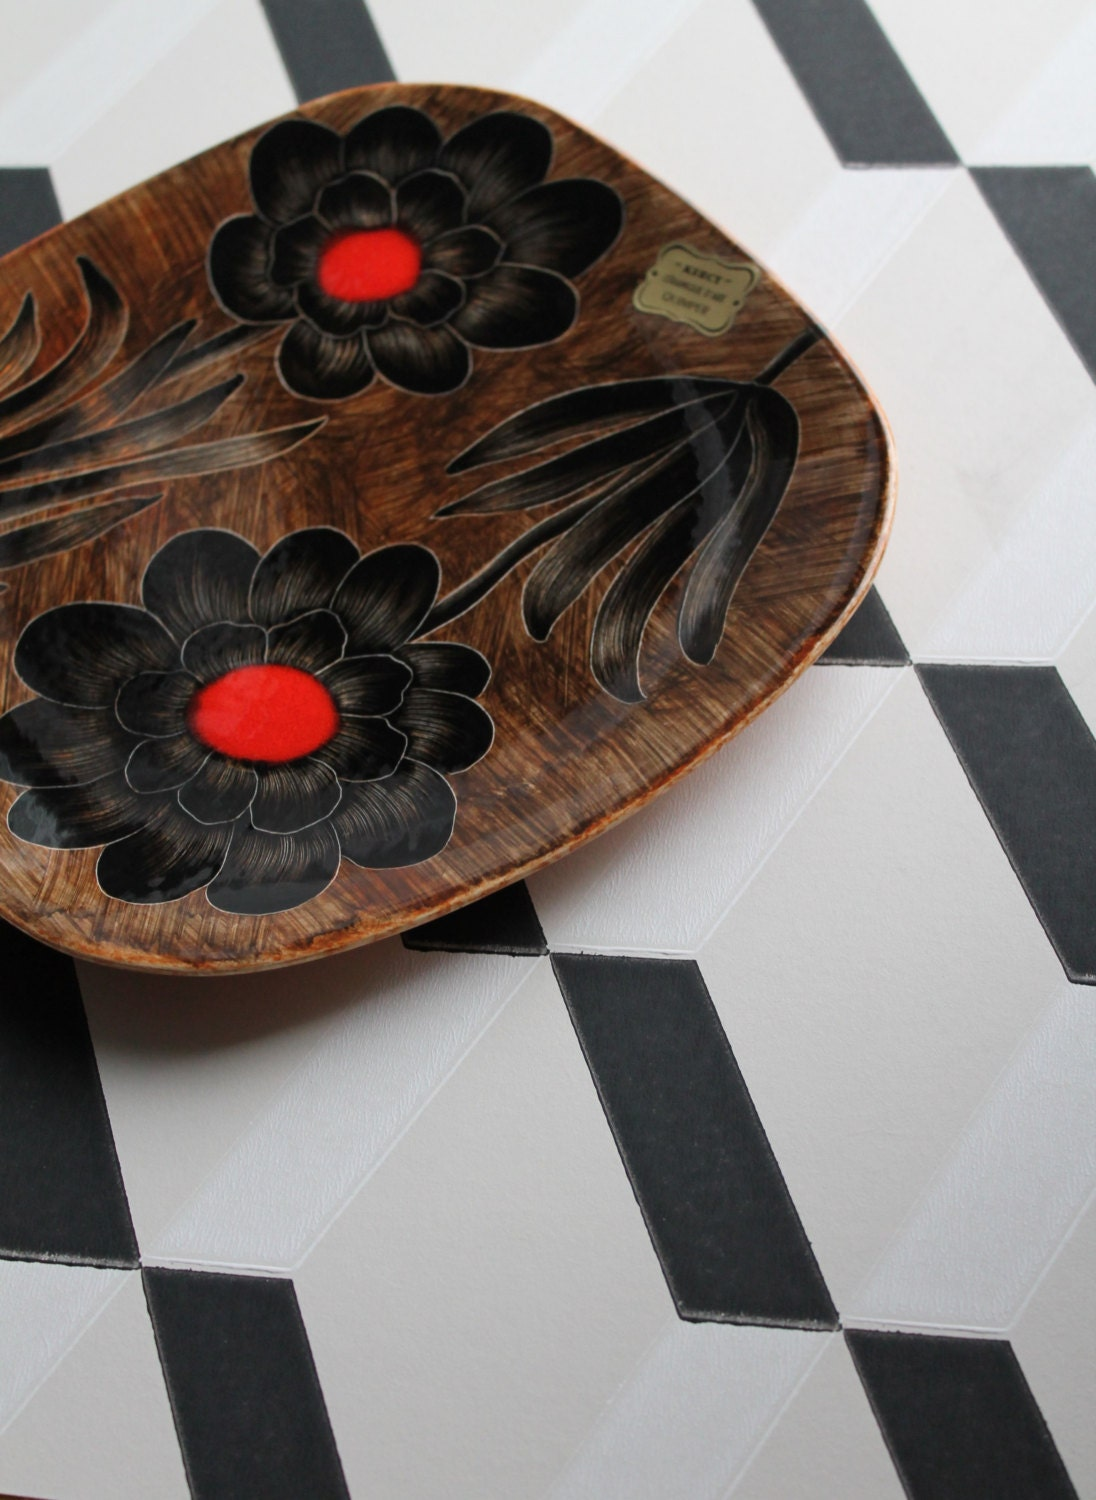 Decorative vintage plate from simone carri kercy for Deco quimper